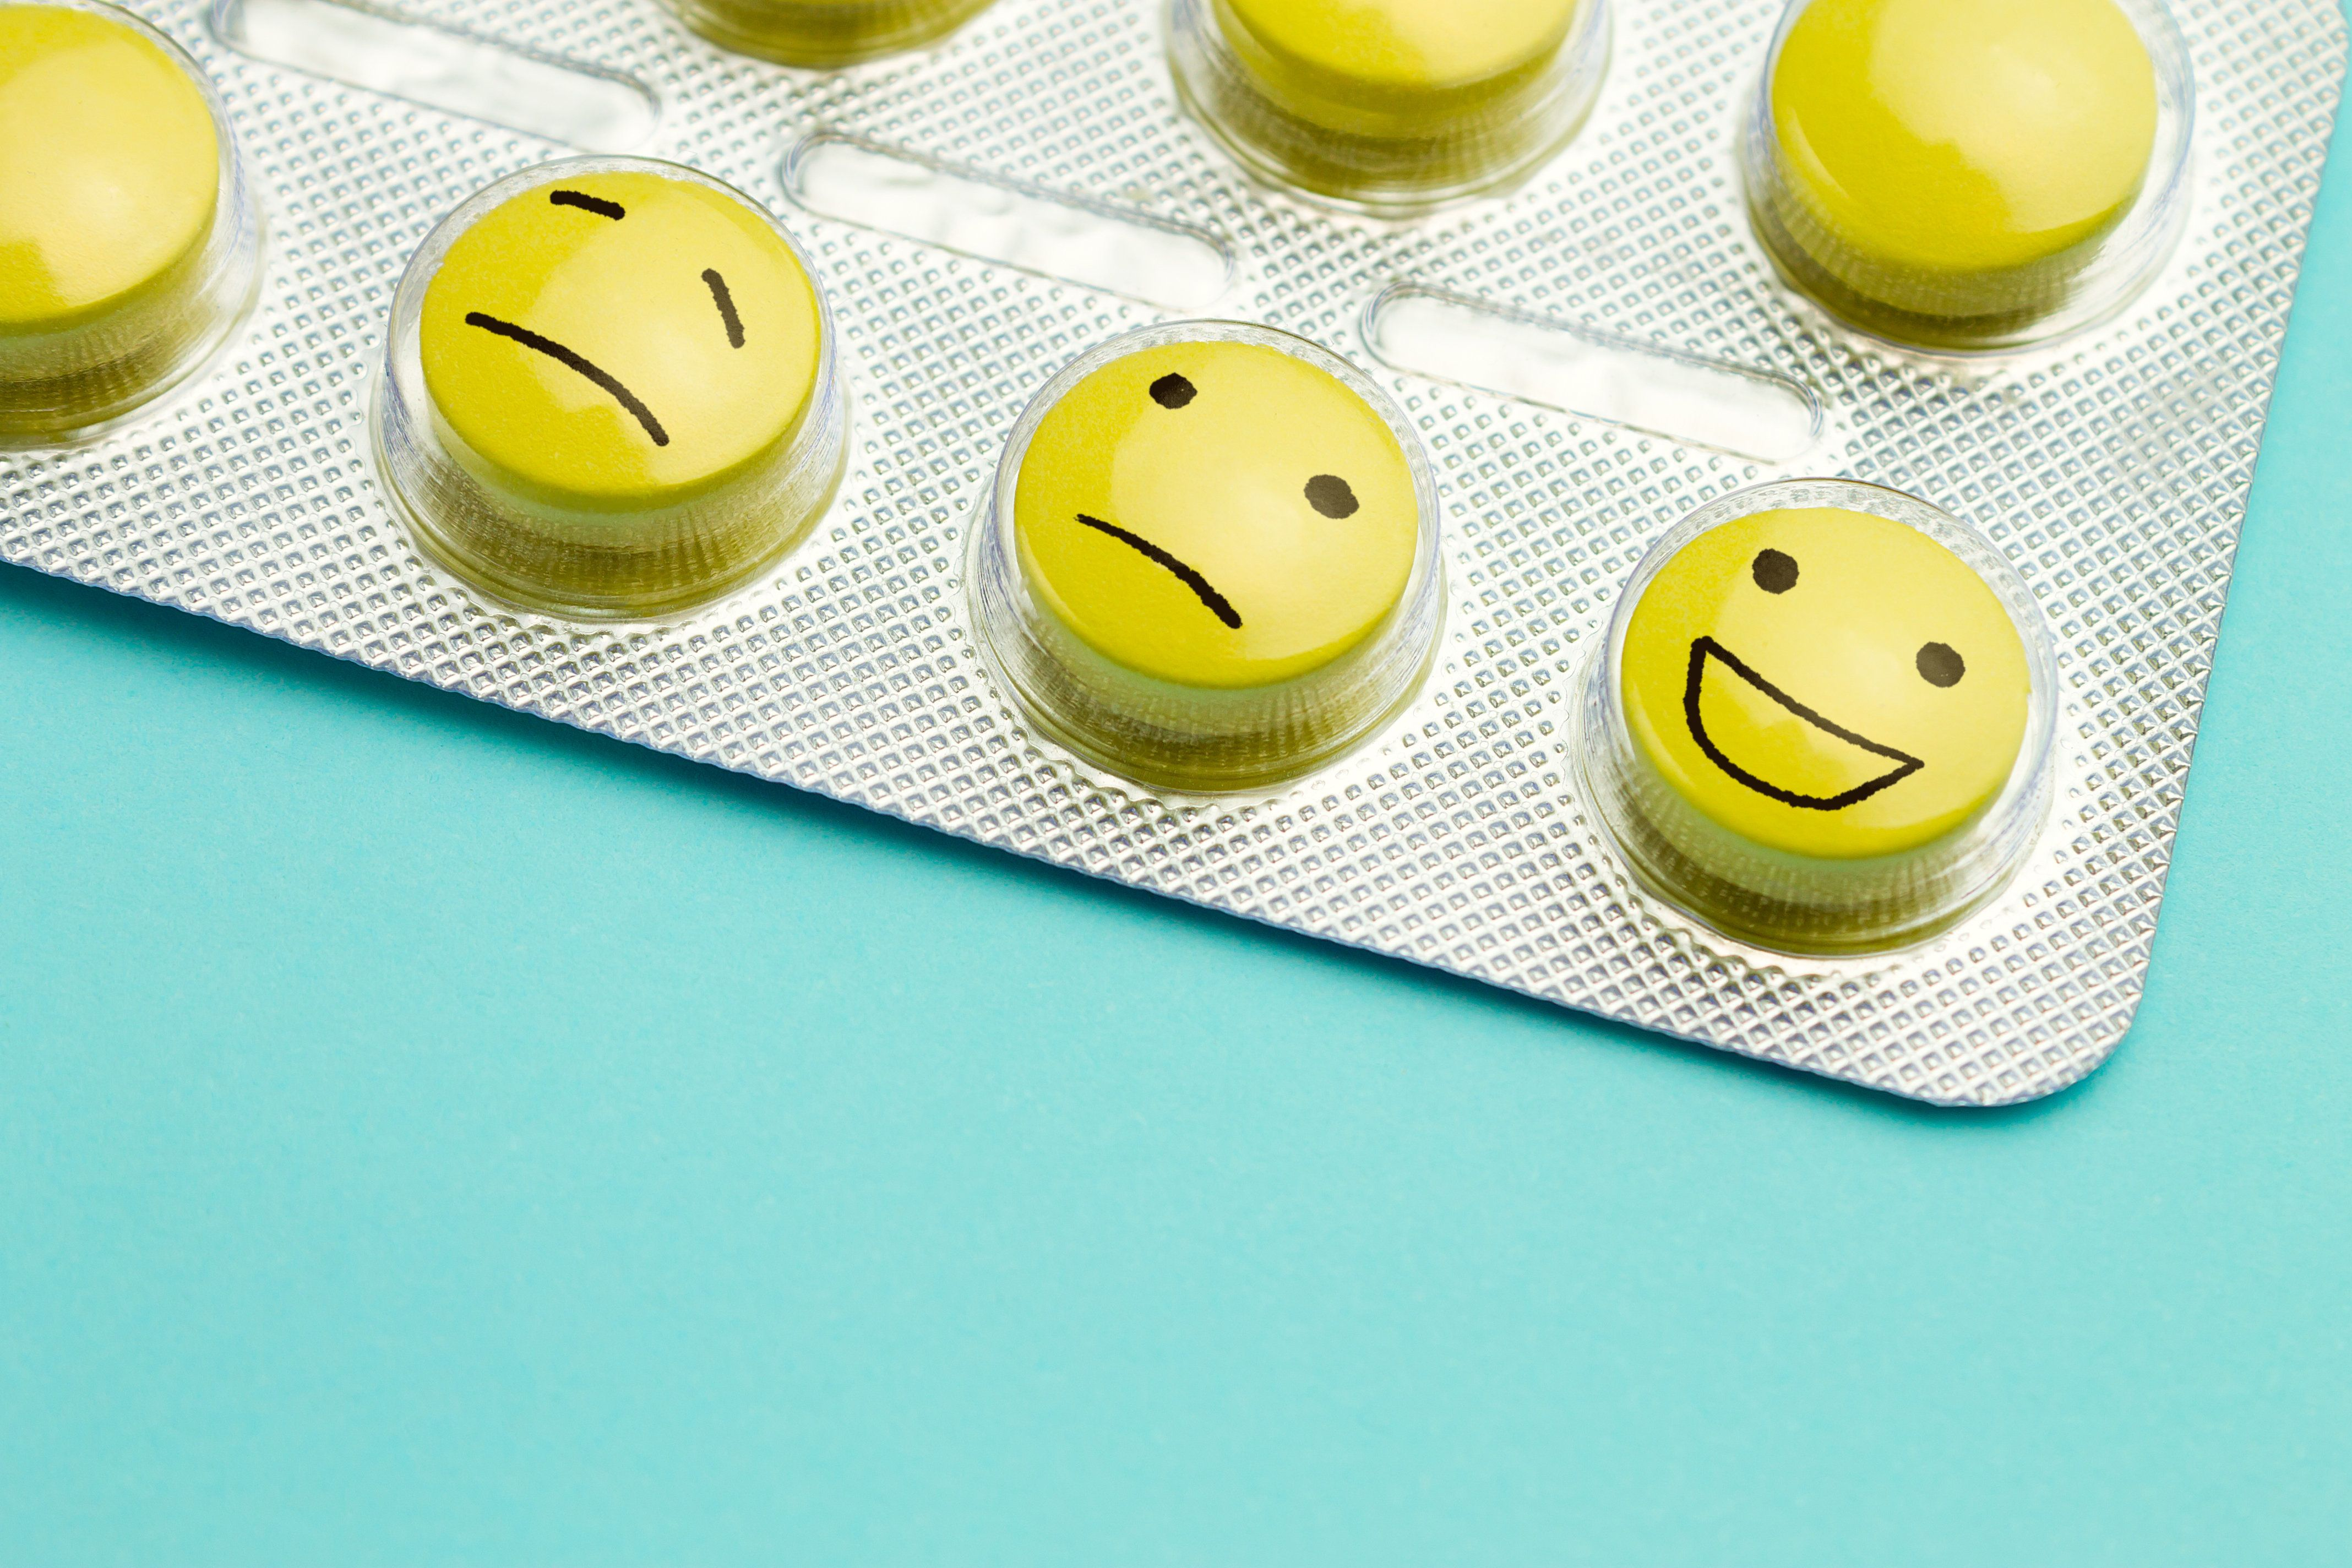 Сoncept of antidepressants and healing